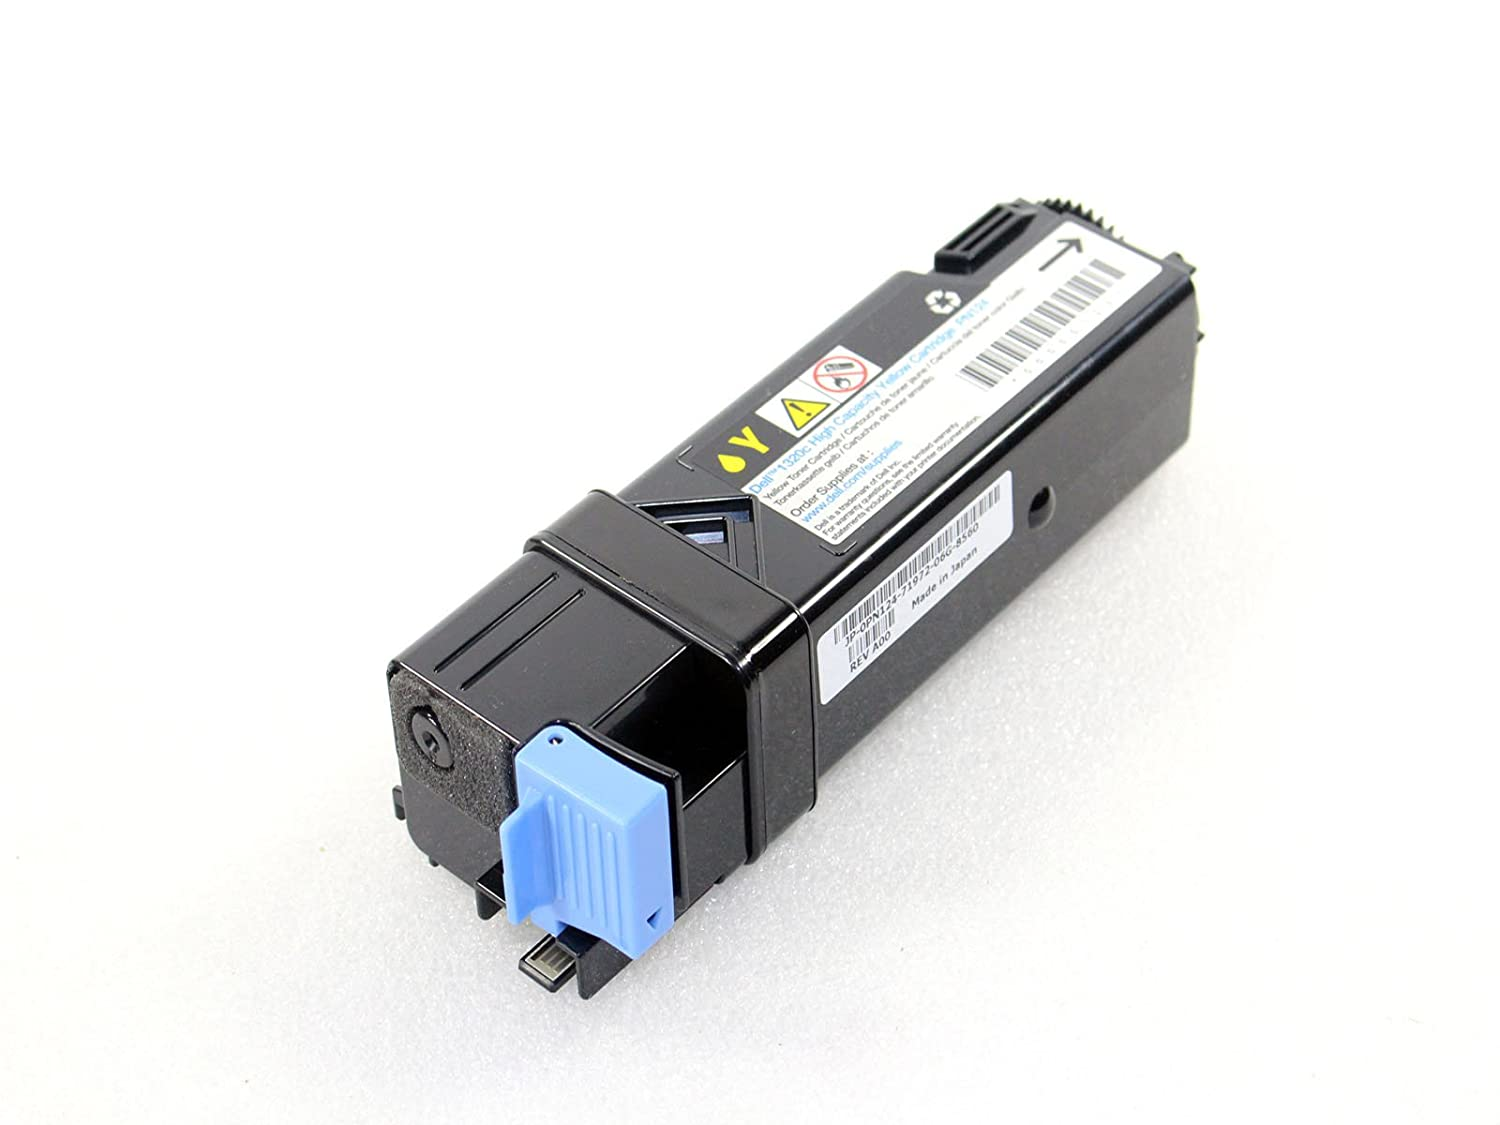 Genuine PN124 Dell 1320C Printer High Yield Yellow Toner Cartridge Compatible Part Numbers: PN124 by Dell B00G5IN37I